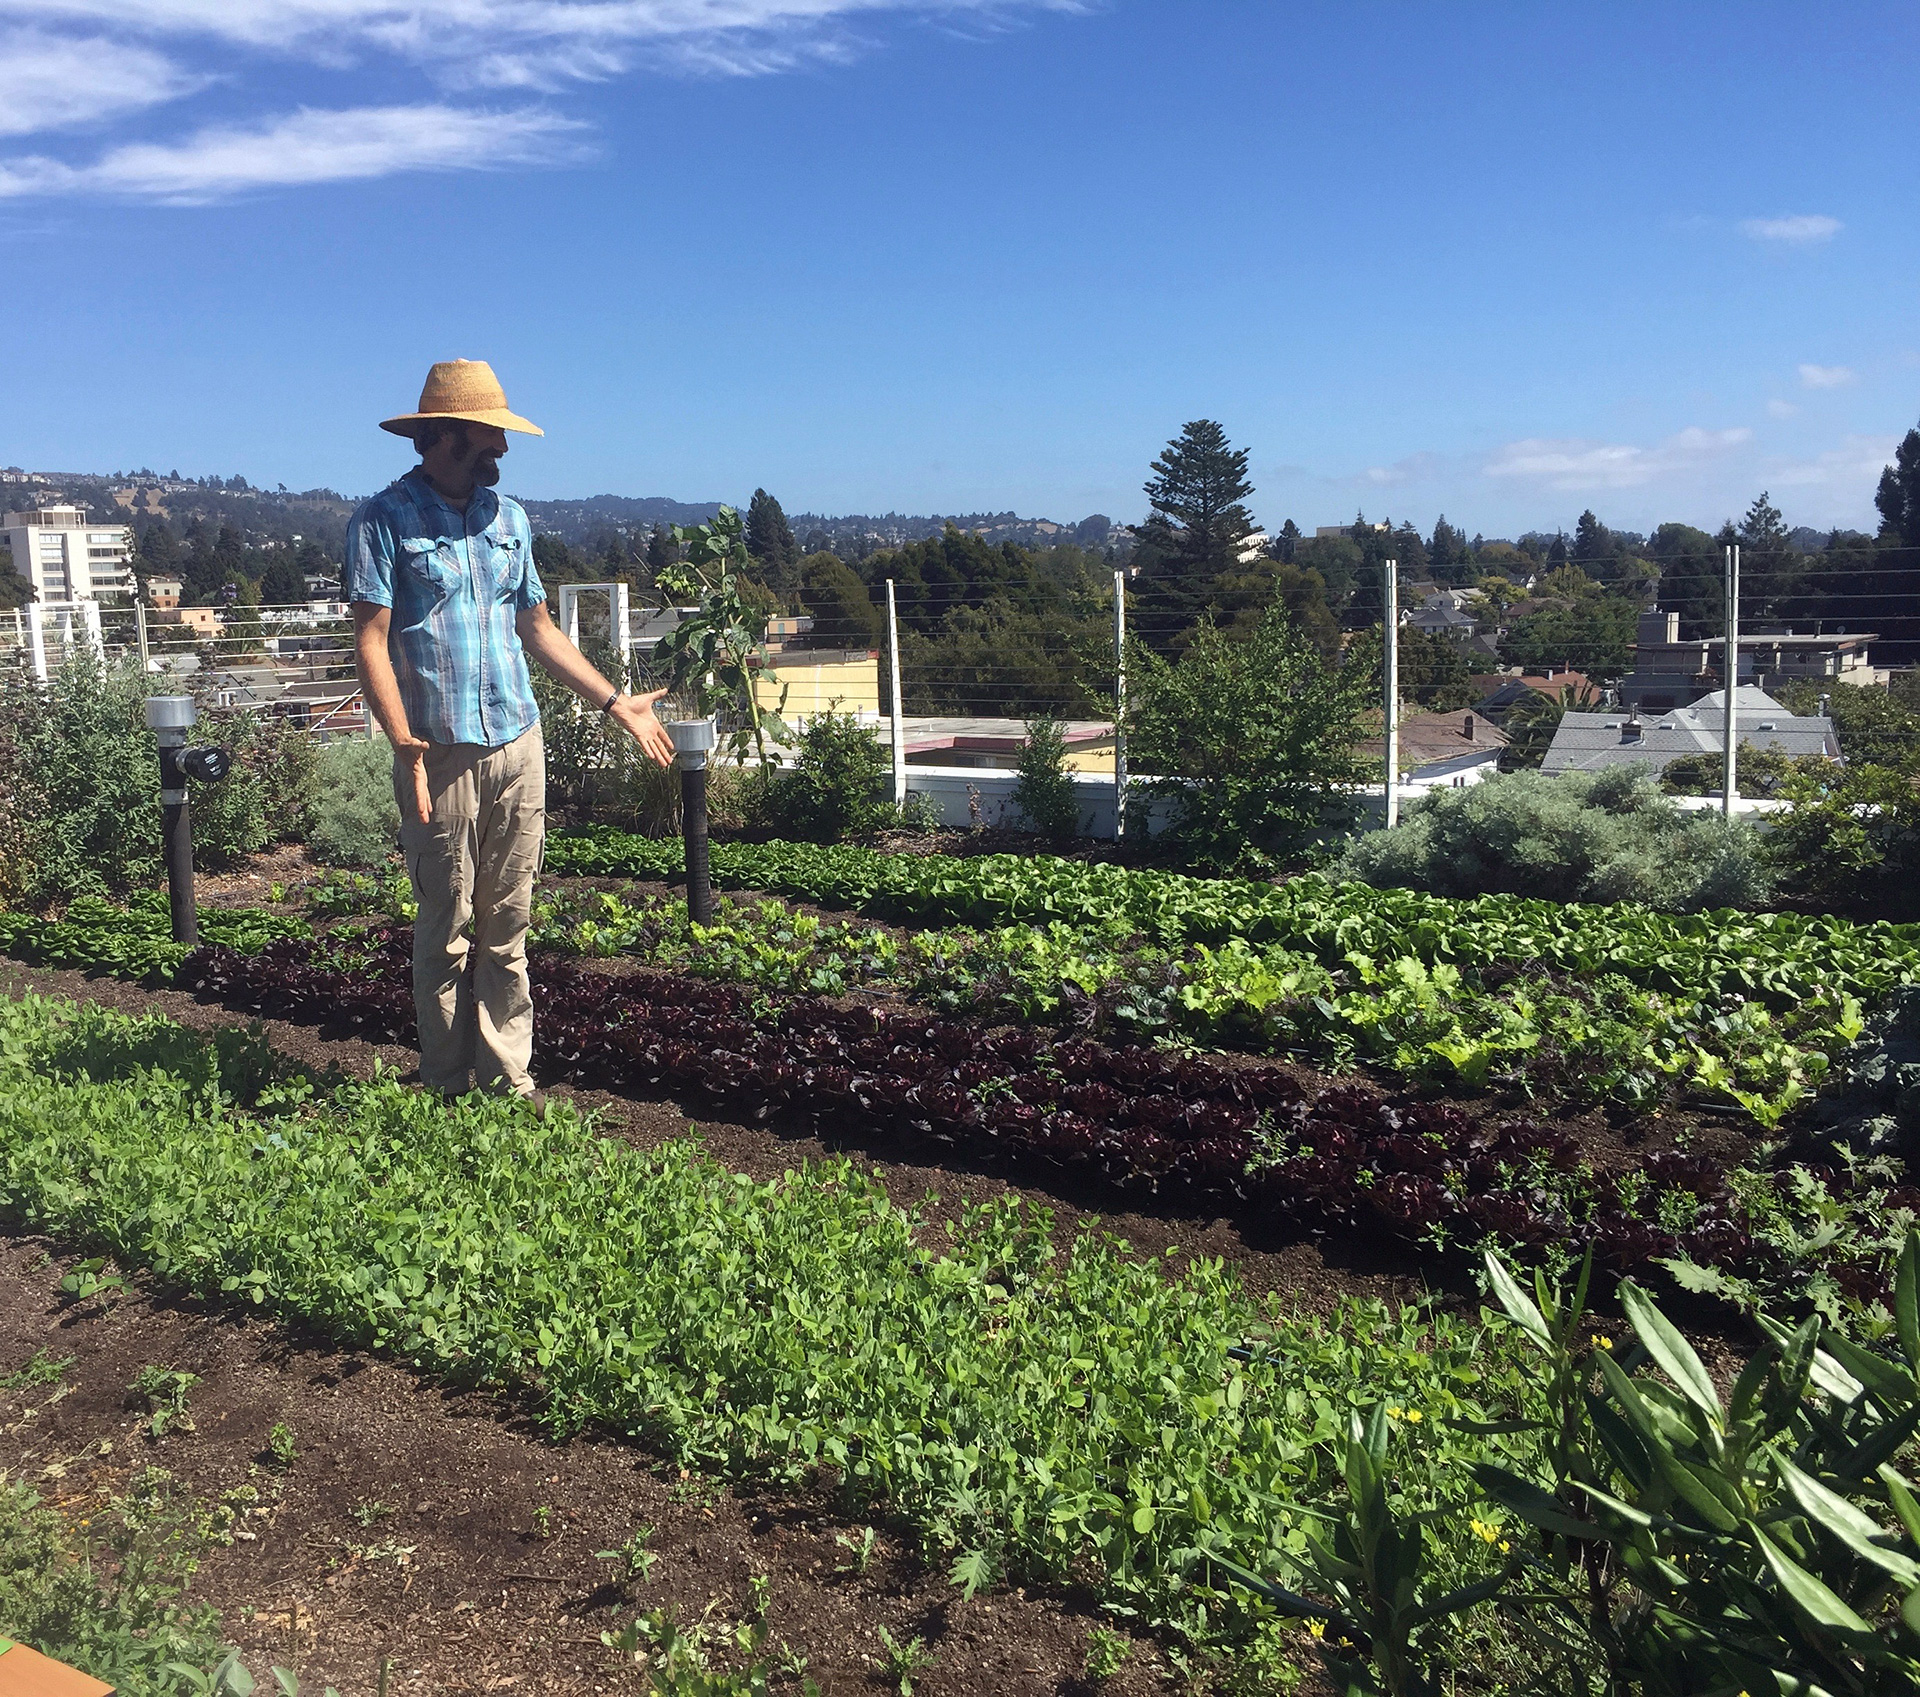 Top Leaf Farm's founder, ecological designer and organic farmer Benjamin Fahrer, introduces some of his bounty. His hyper-local rooftop farm, delivers to customers within a 3 mile radius, including Pizzaiolo, Gather and Chez Panisse.